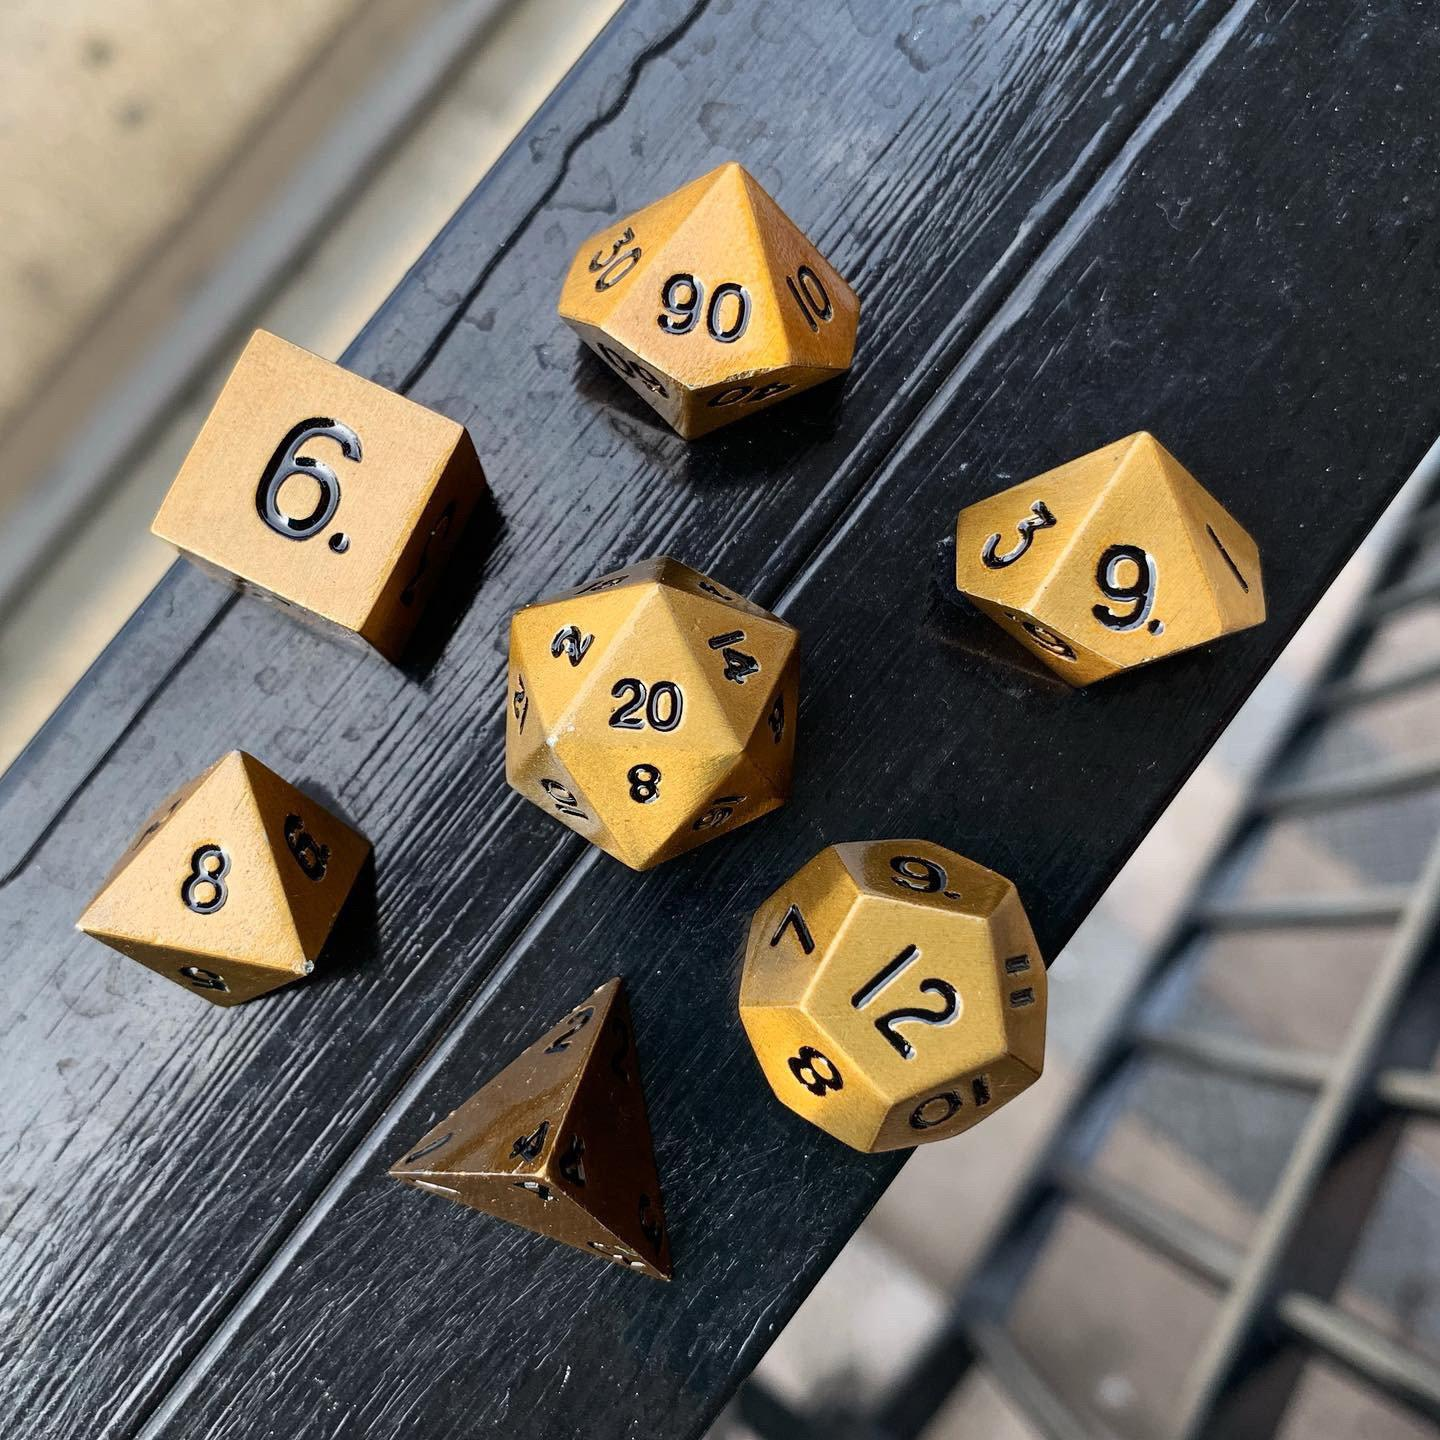 Dragon's Gold 7 Piece Metal Dice Set